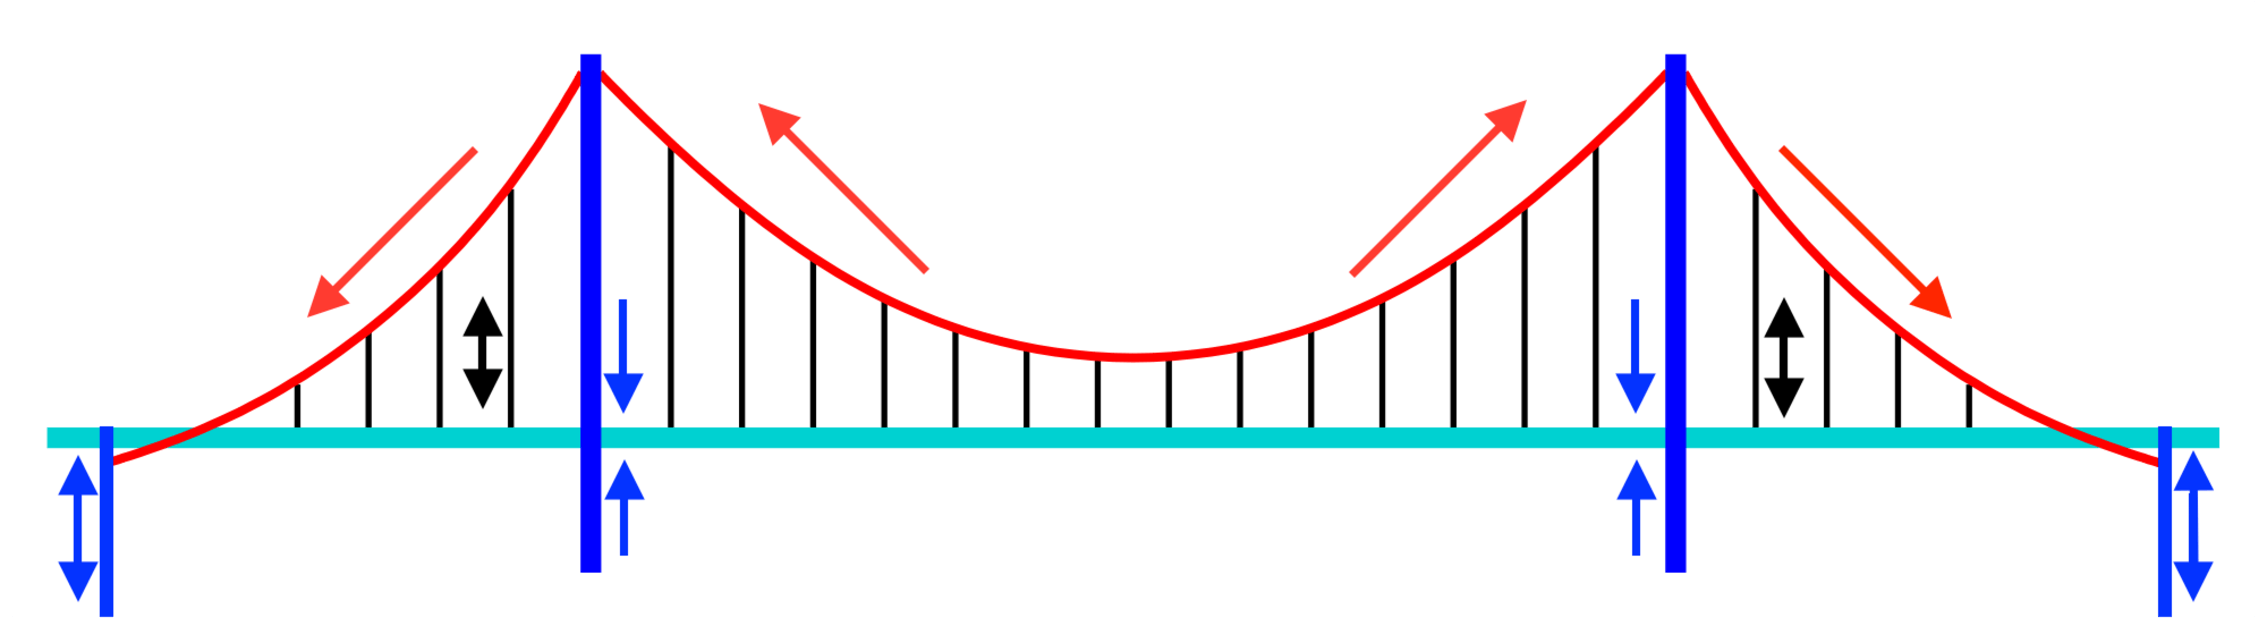 Schematic of a suspension bridge. The red supporting cables transfer forces from the black suspending cables to the blue towers and anchors. - Image Credit: The Conversation , CC BY-ND